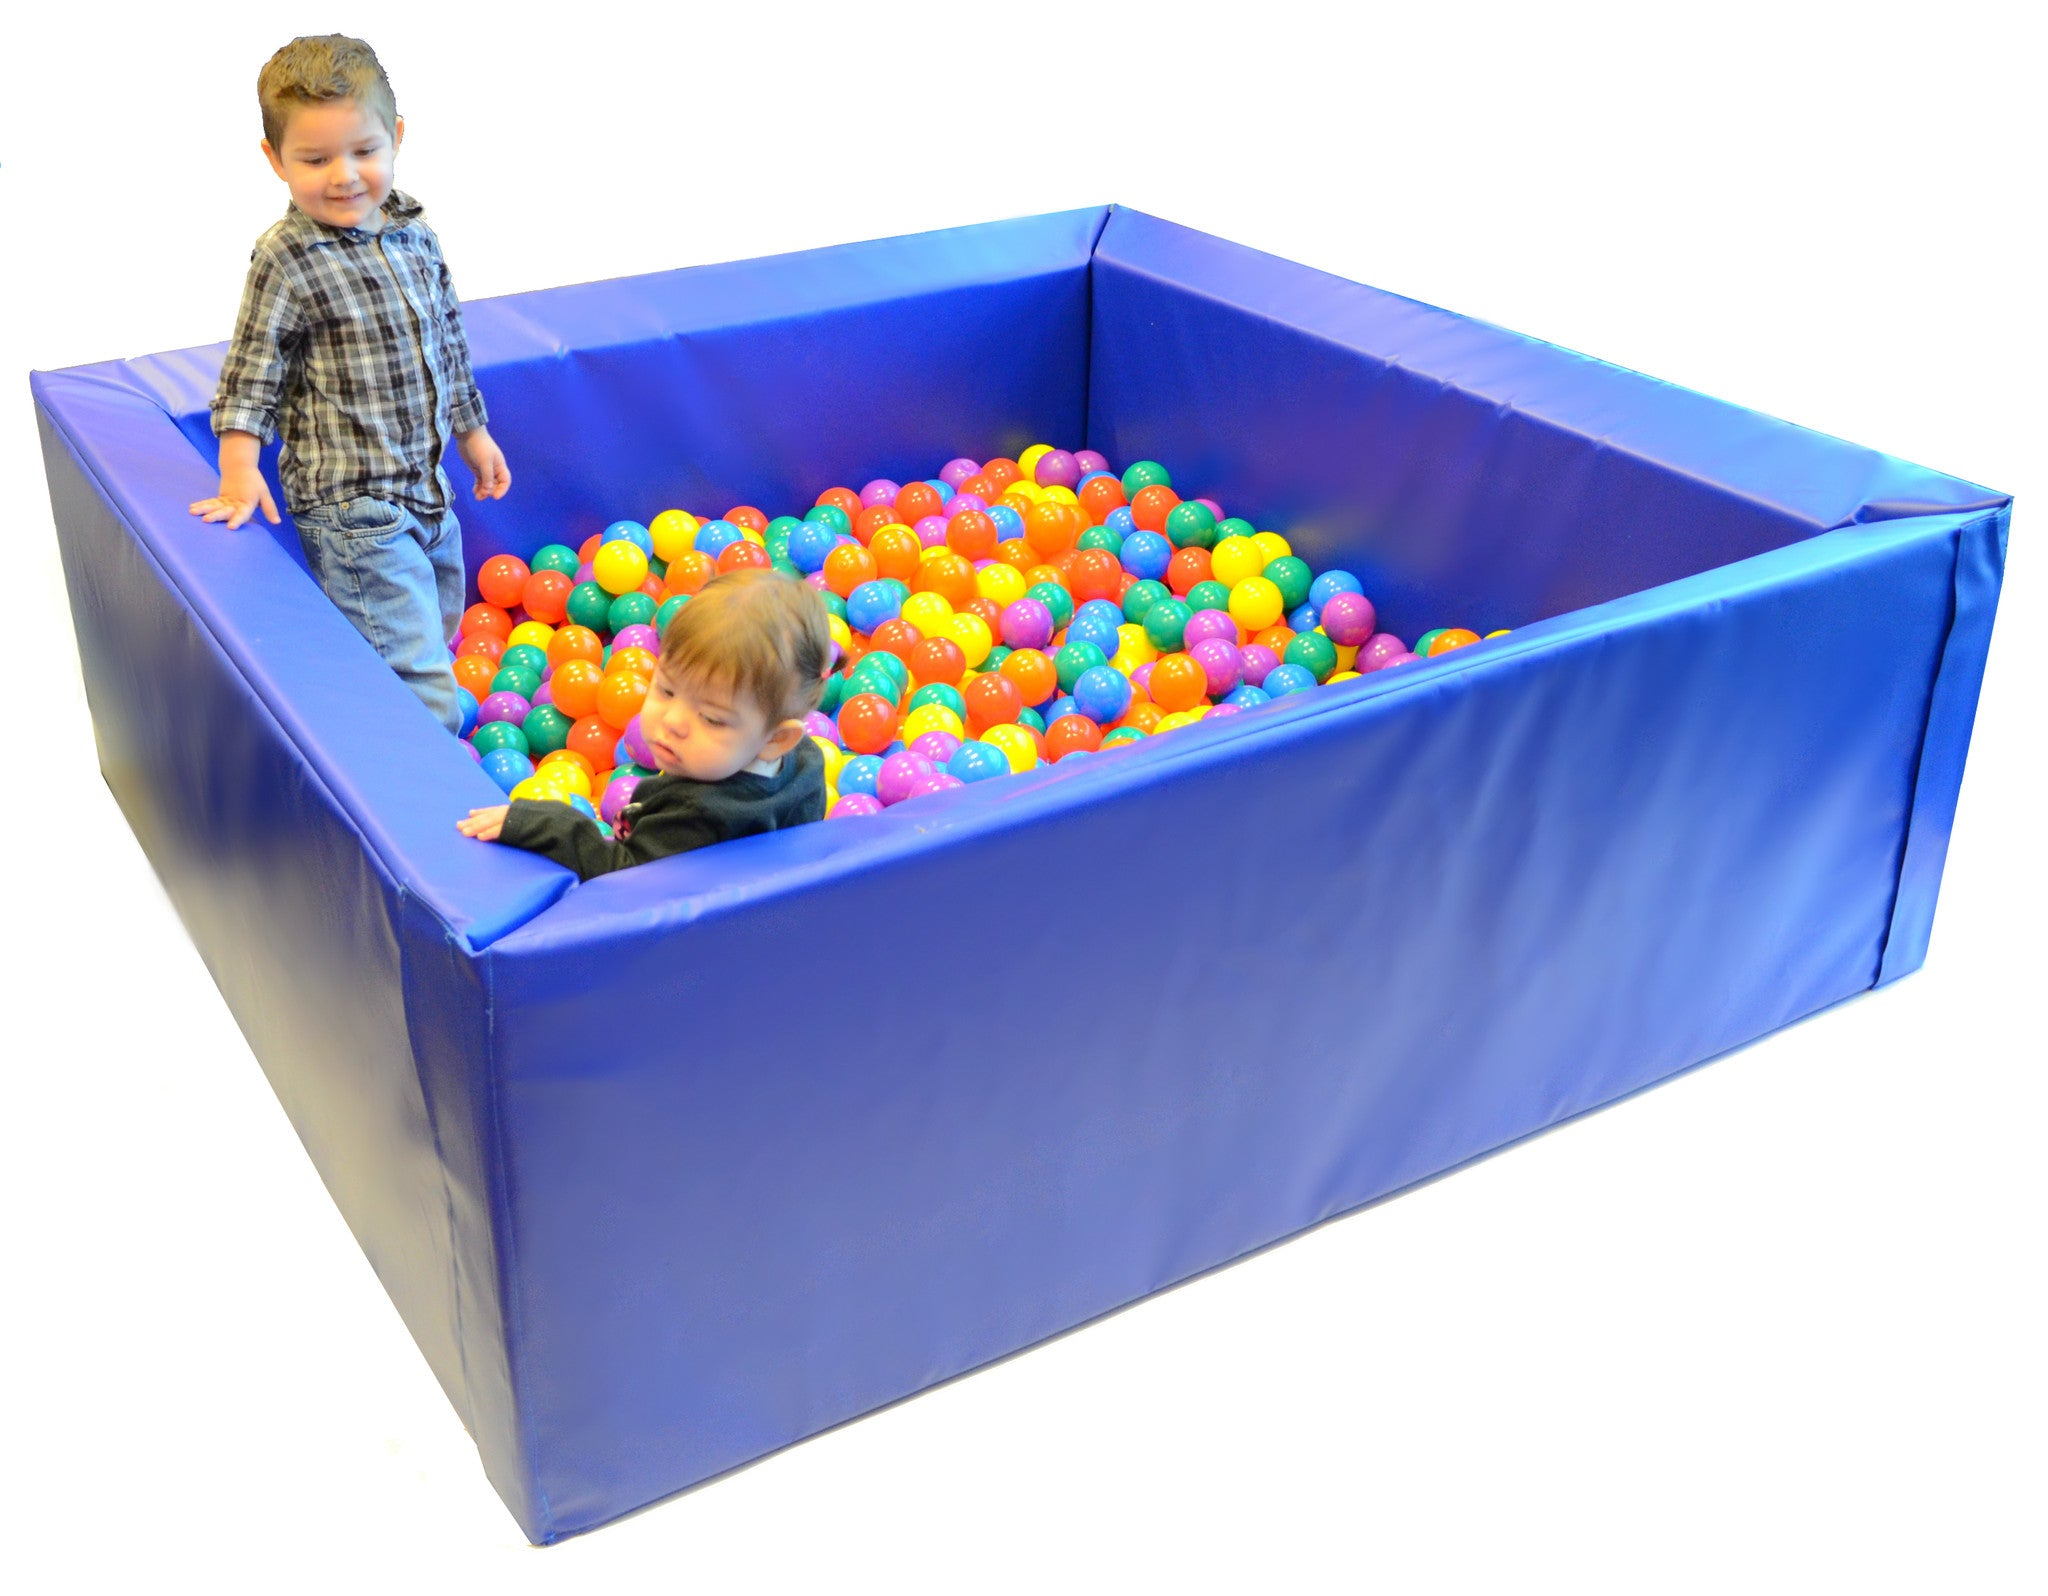 balance beams for toddlers with Giant Ball Pit 72 X72 on Aldenham Country Park in addition Aldenham Country Park also River Bend Park Chesterfield also Giant Ball Pit 72 X72 furthermore Parent Me.